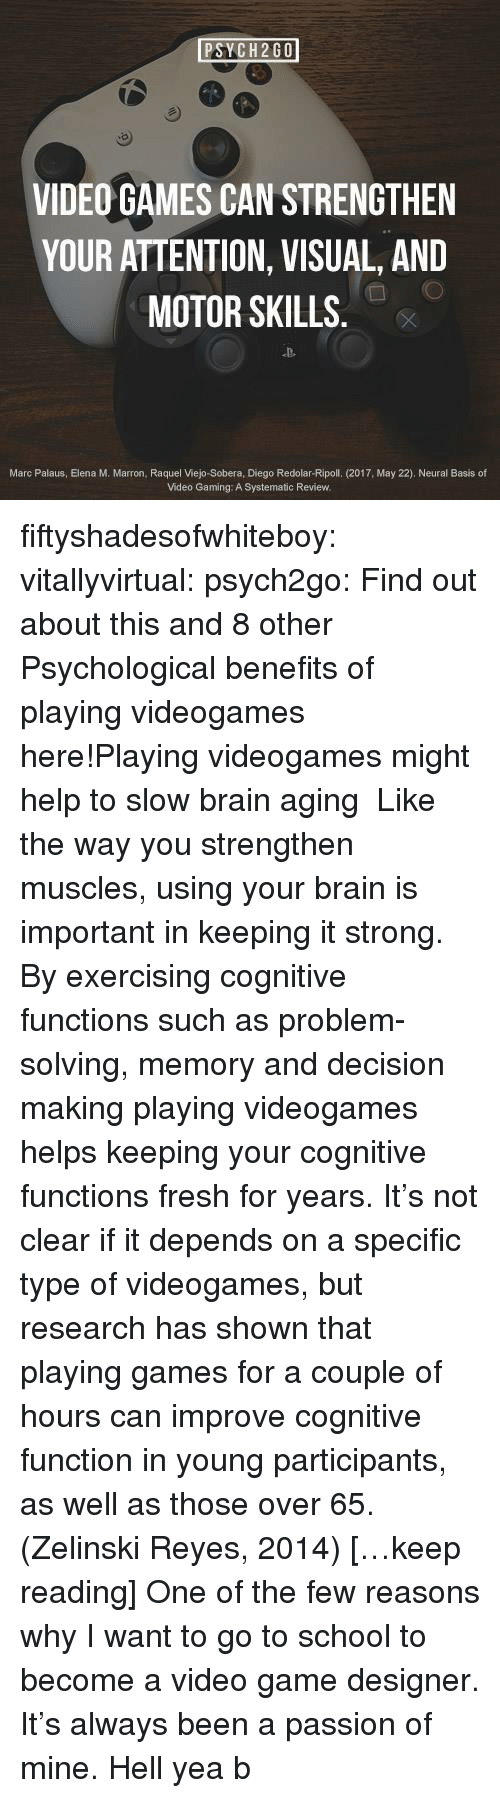 Marces: PSYCH2GO  VIDEO GAMES CAN STRENGTHEN  YOUR ATTENTION, VISUAL, AND  MOTOR SKILLS  D-  Marc Palaus, Elena M. Marron, Raquel Viejo-Sobera, Diego Redolar-Ripoll. (2017, May 22). Neural Basis of  Video Gaming: A Systematic Review. fiftyshadesofwhiteboy:  vitallyvirtual:  psych2go:  Find out about this and 8 other Psychological benefits of playing videogames here!Playing videogames might help to slow brain aging   Like the way you strengthen muscles, using your brain is important in keeping it strong. By exercising cognitive functions such as problem-solving, memory and decision making playing videogames helps keeping your cognitive functions fresh for years. It's not clear if it depends on a specific type of videogames, but research has shown that playing games for a couple of hours can improve cognitive function in young participants, as well as those over 65. (Zelinski  Reyes, 2014) […keep reading]  One of the few reasons why I want to go to school to become a video game designer. It's always been a passion of mine.  Hell yea b